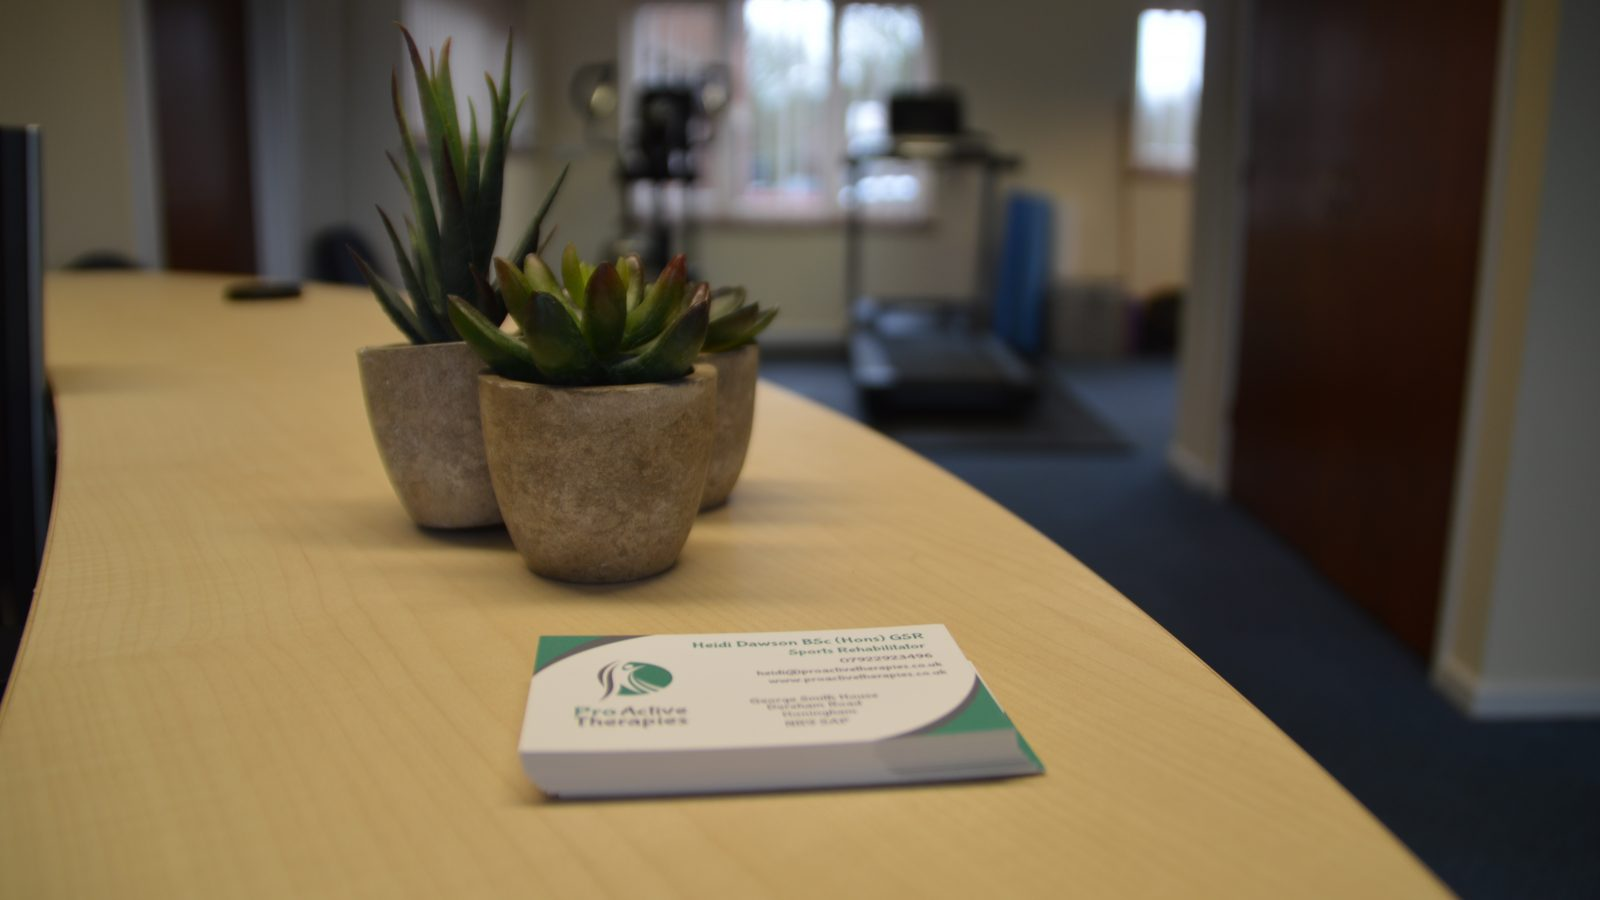 ProActive Therapies clinic offering sports massage and injury rehab